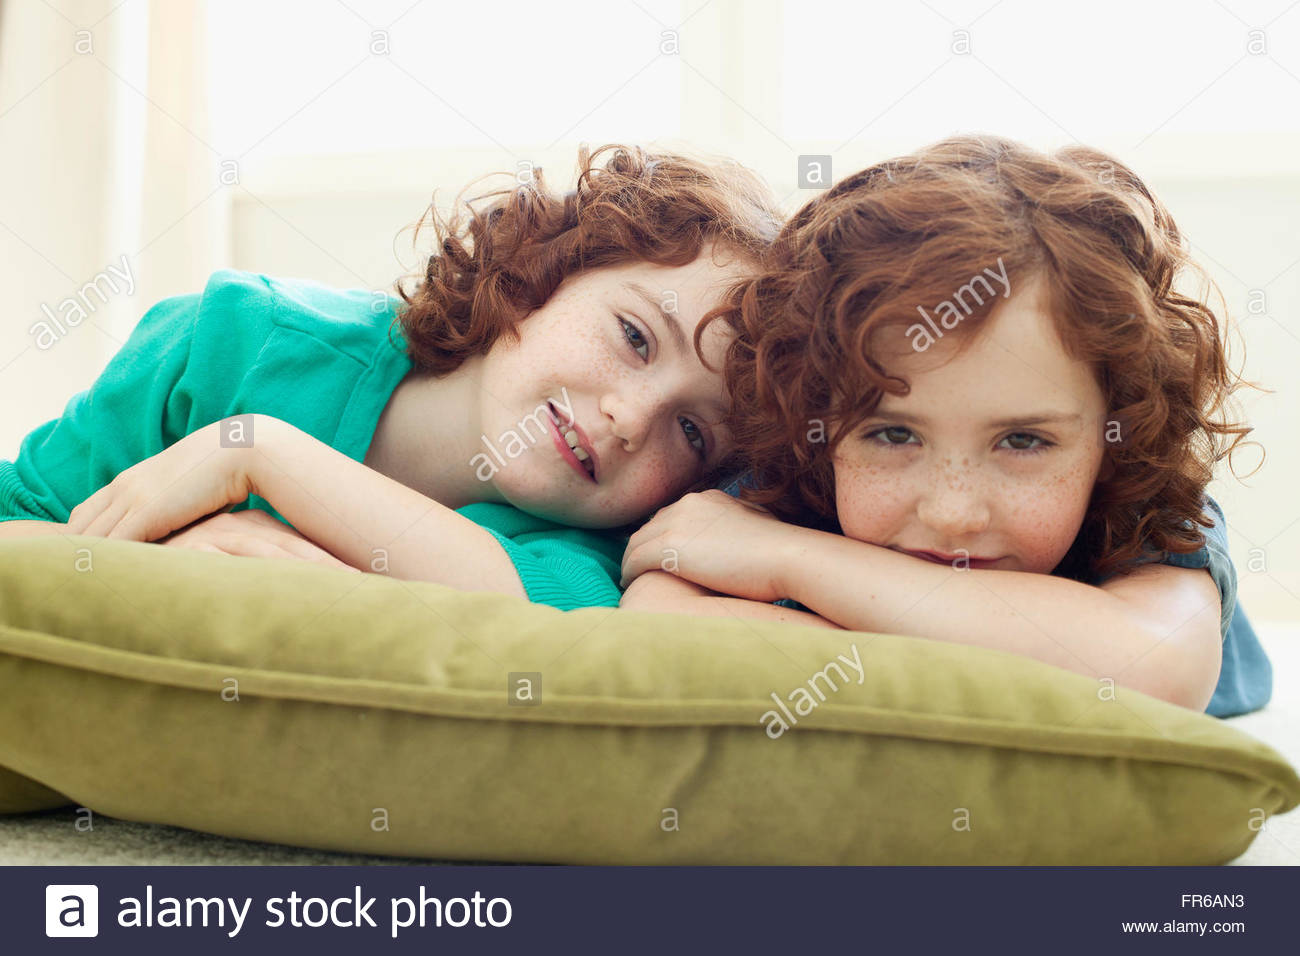 Apologise, that redhead twins hugging